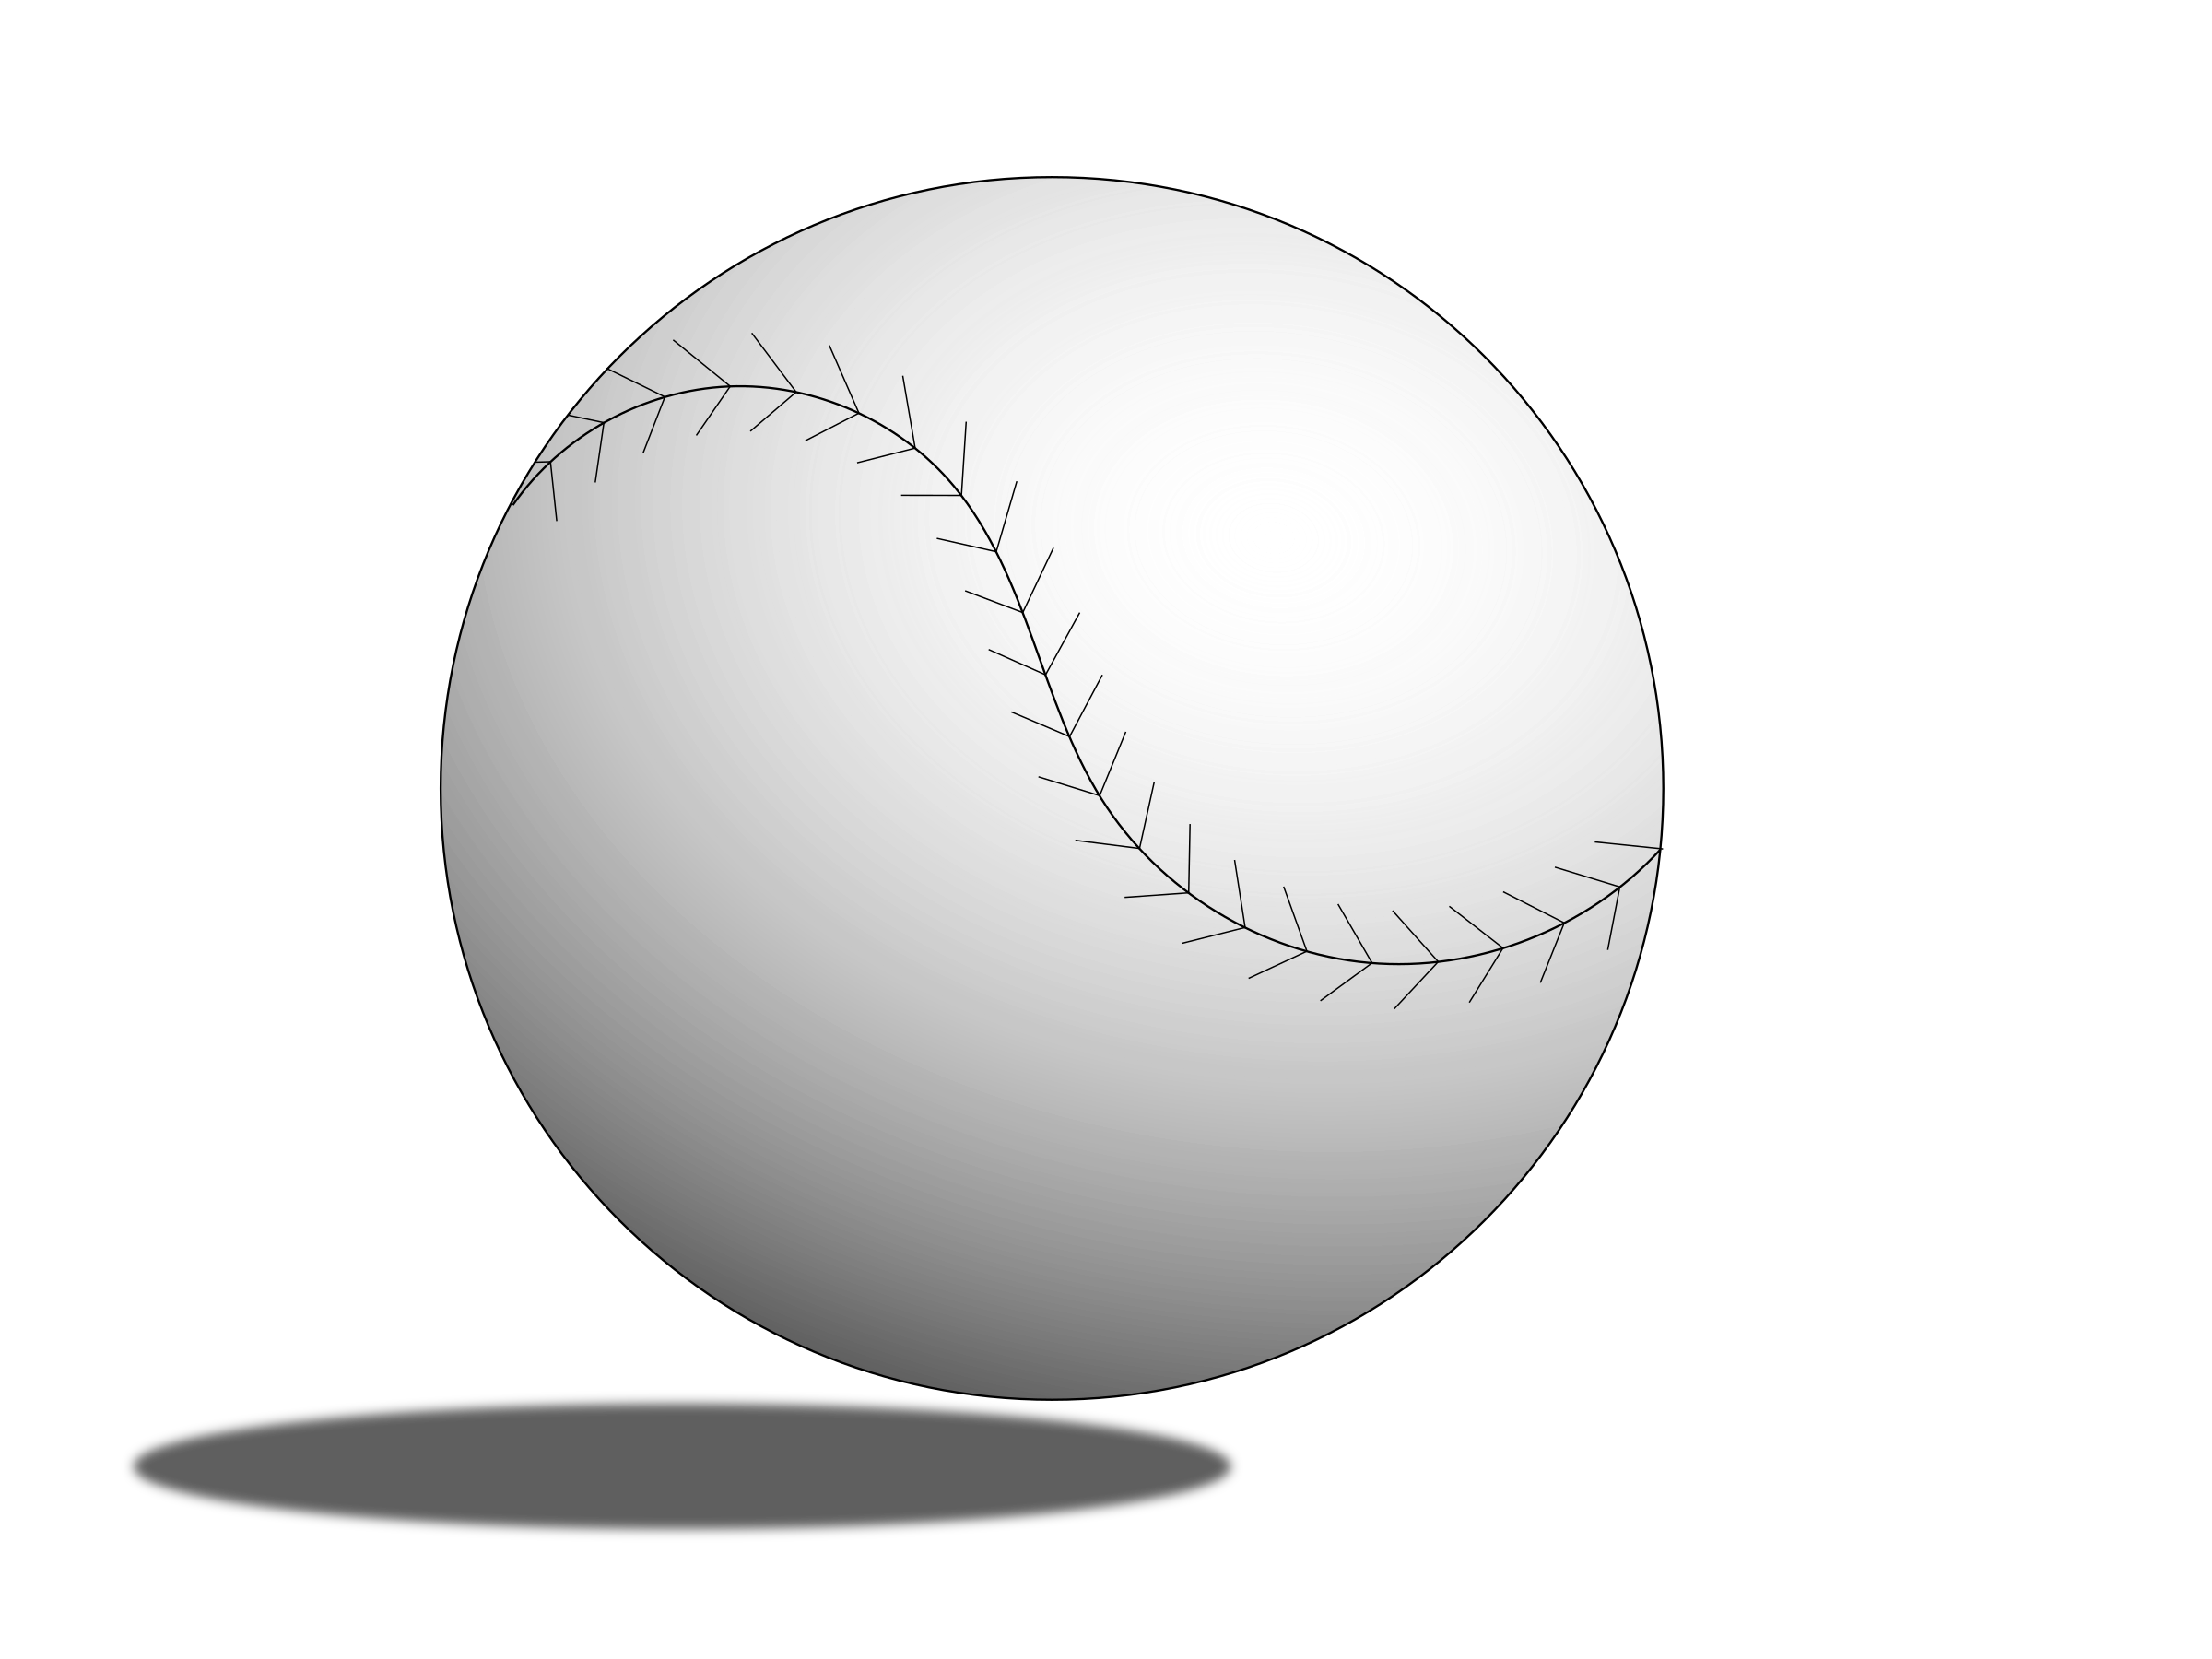 Baseball Ball by Tjoepoe